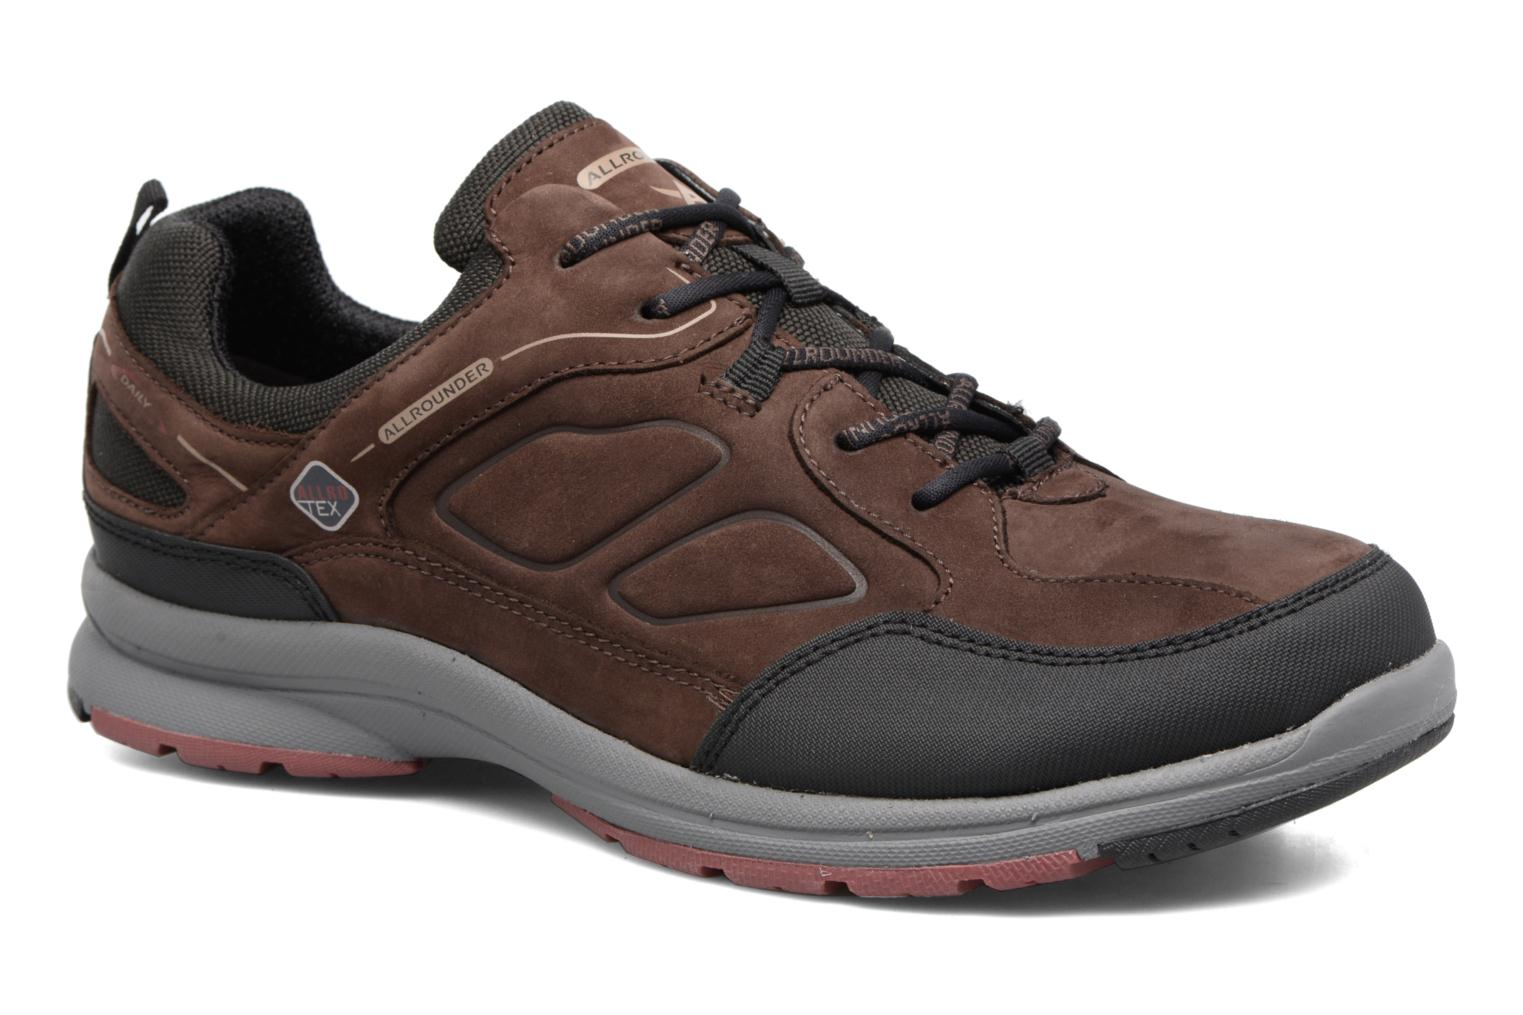 Baskets Allrounder by Mephisto Caletto Tex Marron vue détail/paire